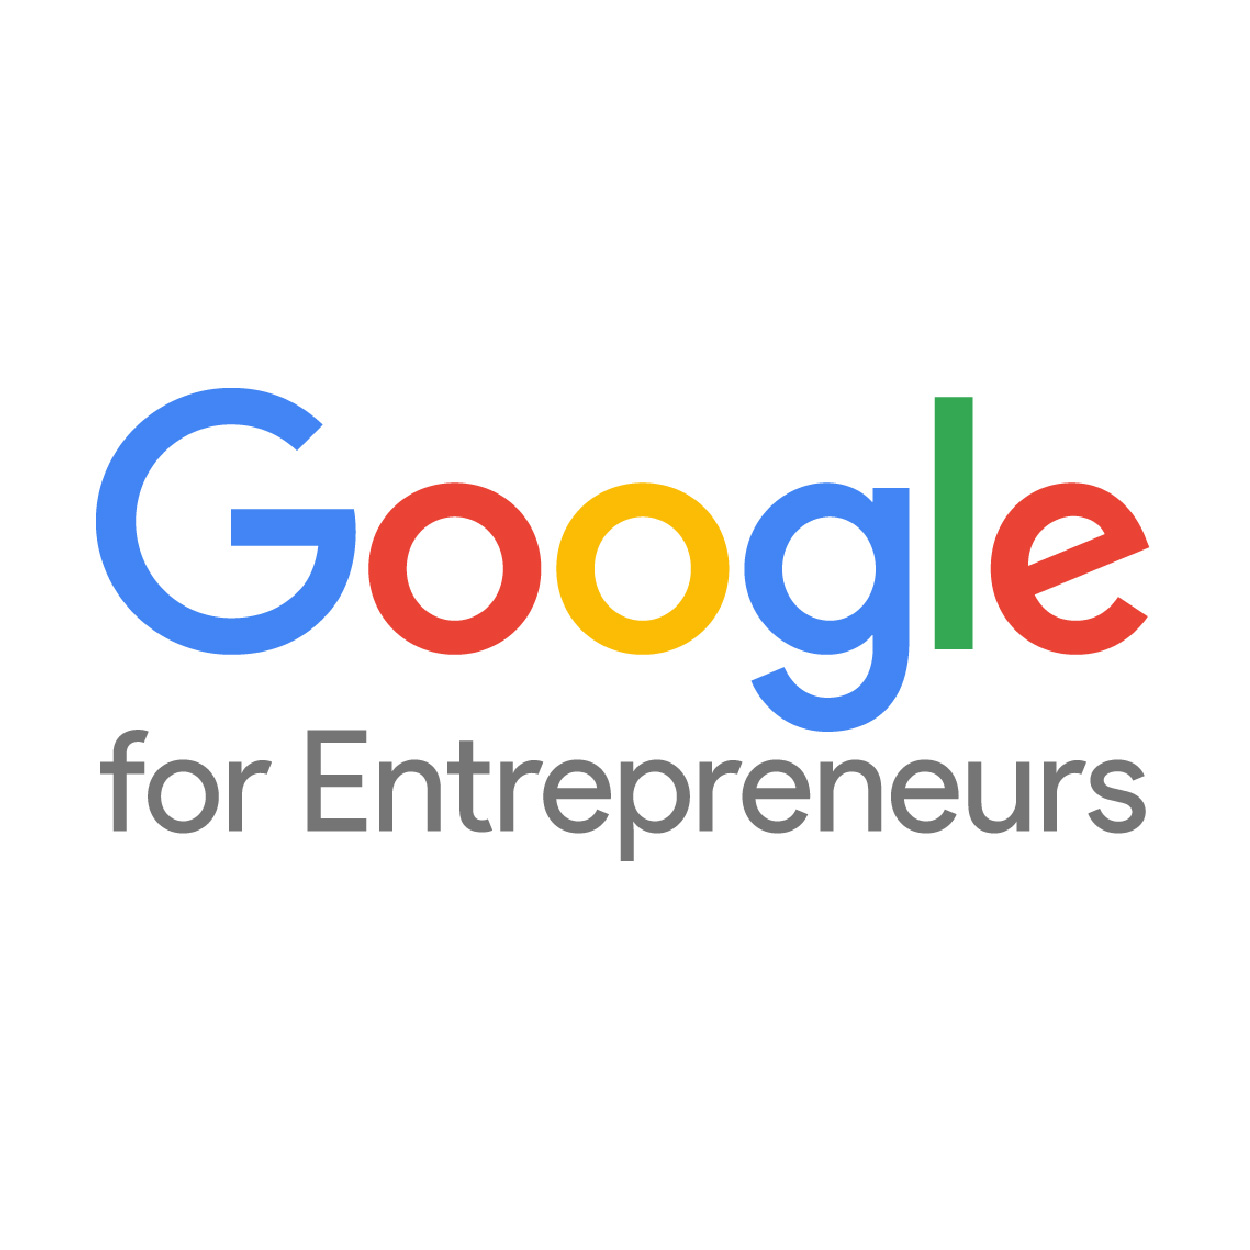 google for entrepreneurs-01.jpg